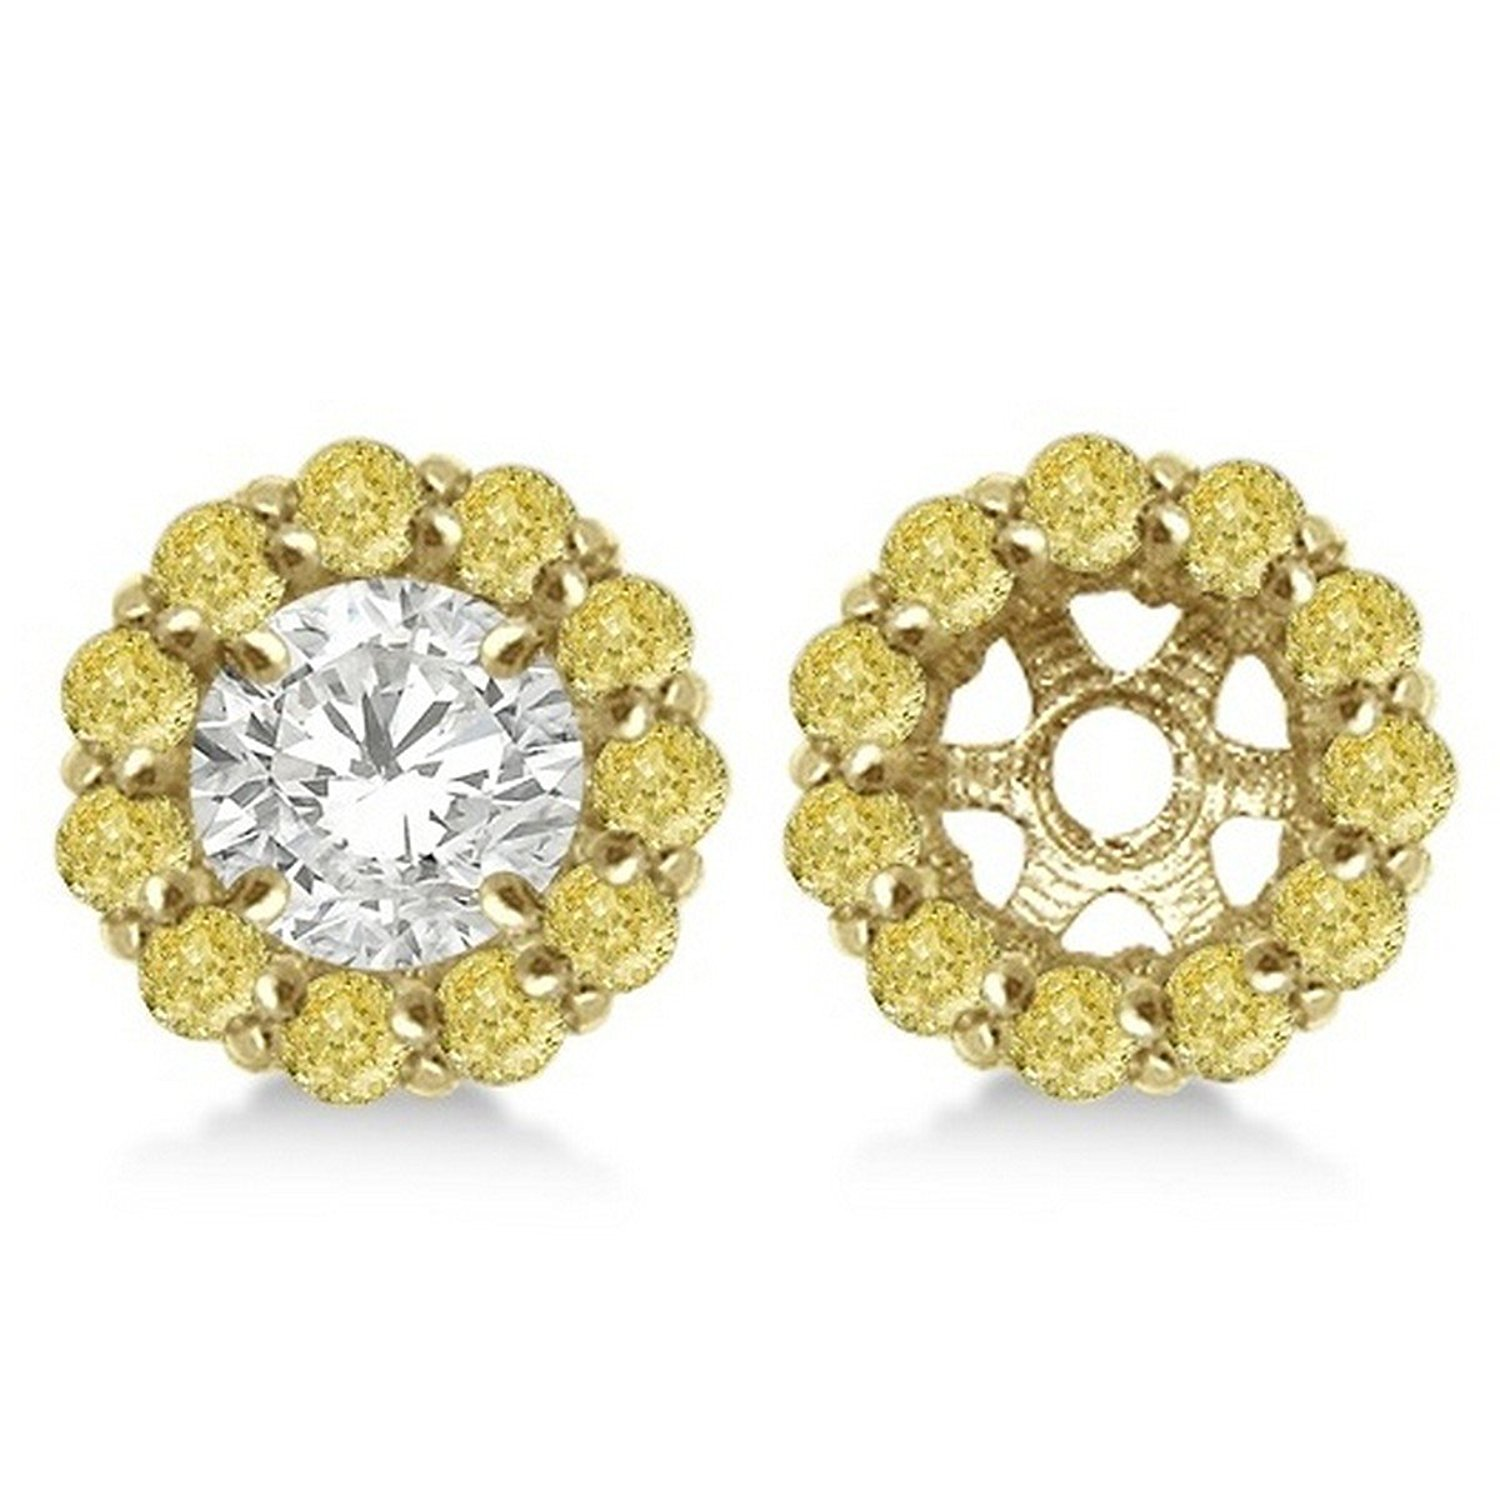 fd0d0802d Get Quotations · 14k Gold Round Fancy Yellow Diamond Earring Jackets for  7mm Diamond Studs 0.90cw